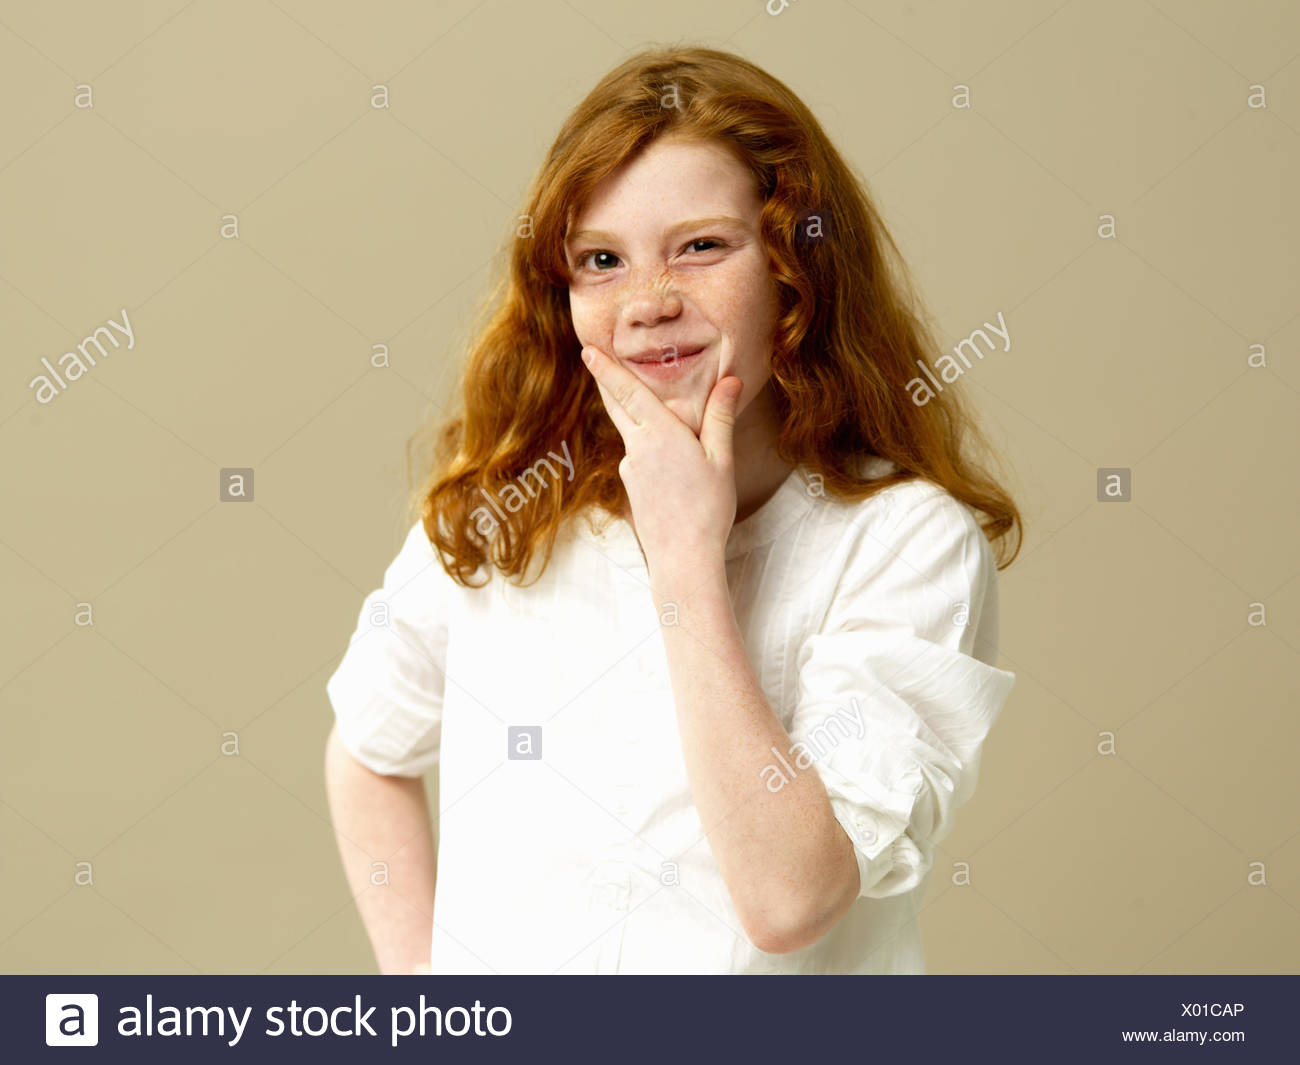 Girls, red-haired, gesture, thoughtfully, portrait, child, long-haired, blouse, shirt, freckles, hand, chin, brood, doubt undecided, think, consider, tricky, facial play, grimace, young persons, youth, childhood, studio, - Stock Image